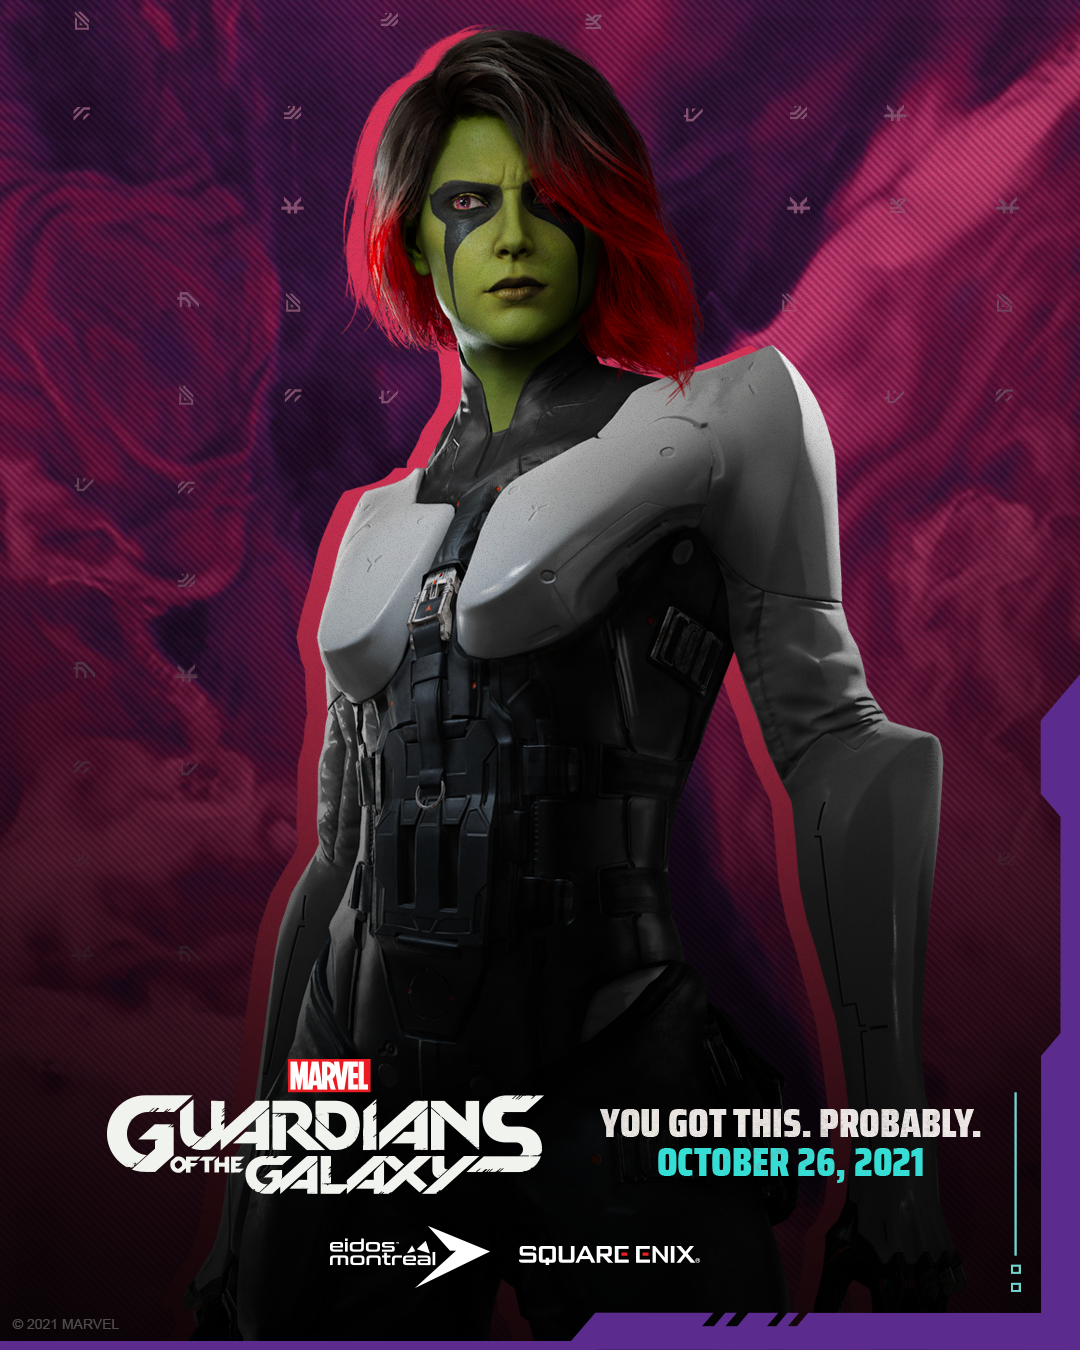 Gamora frowning slightly, looking determined and calm.